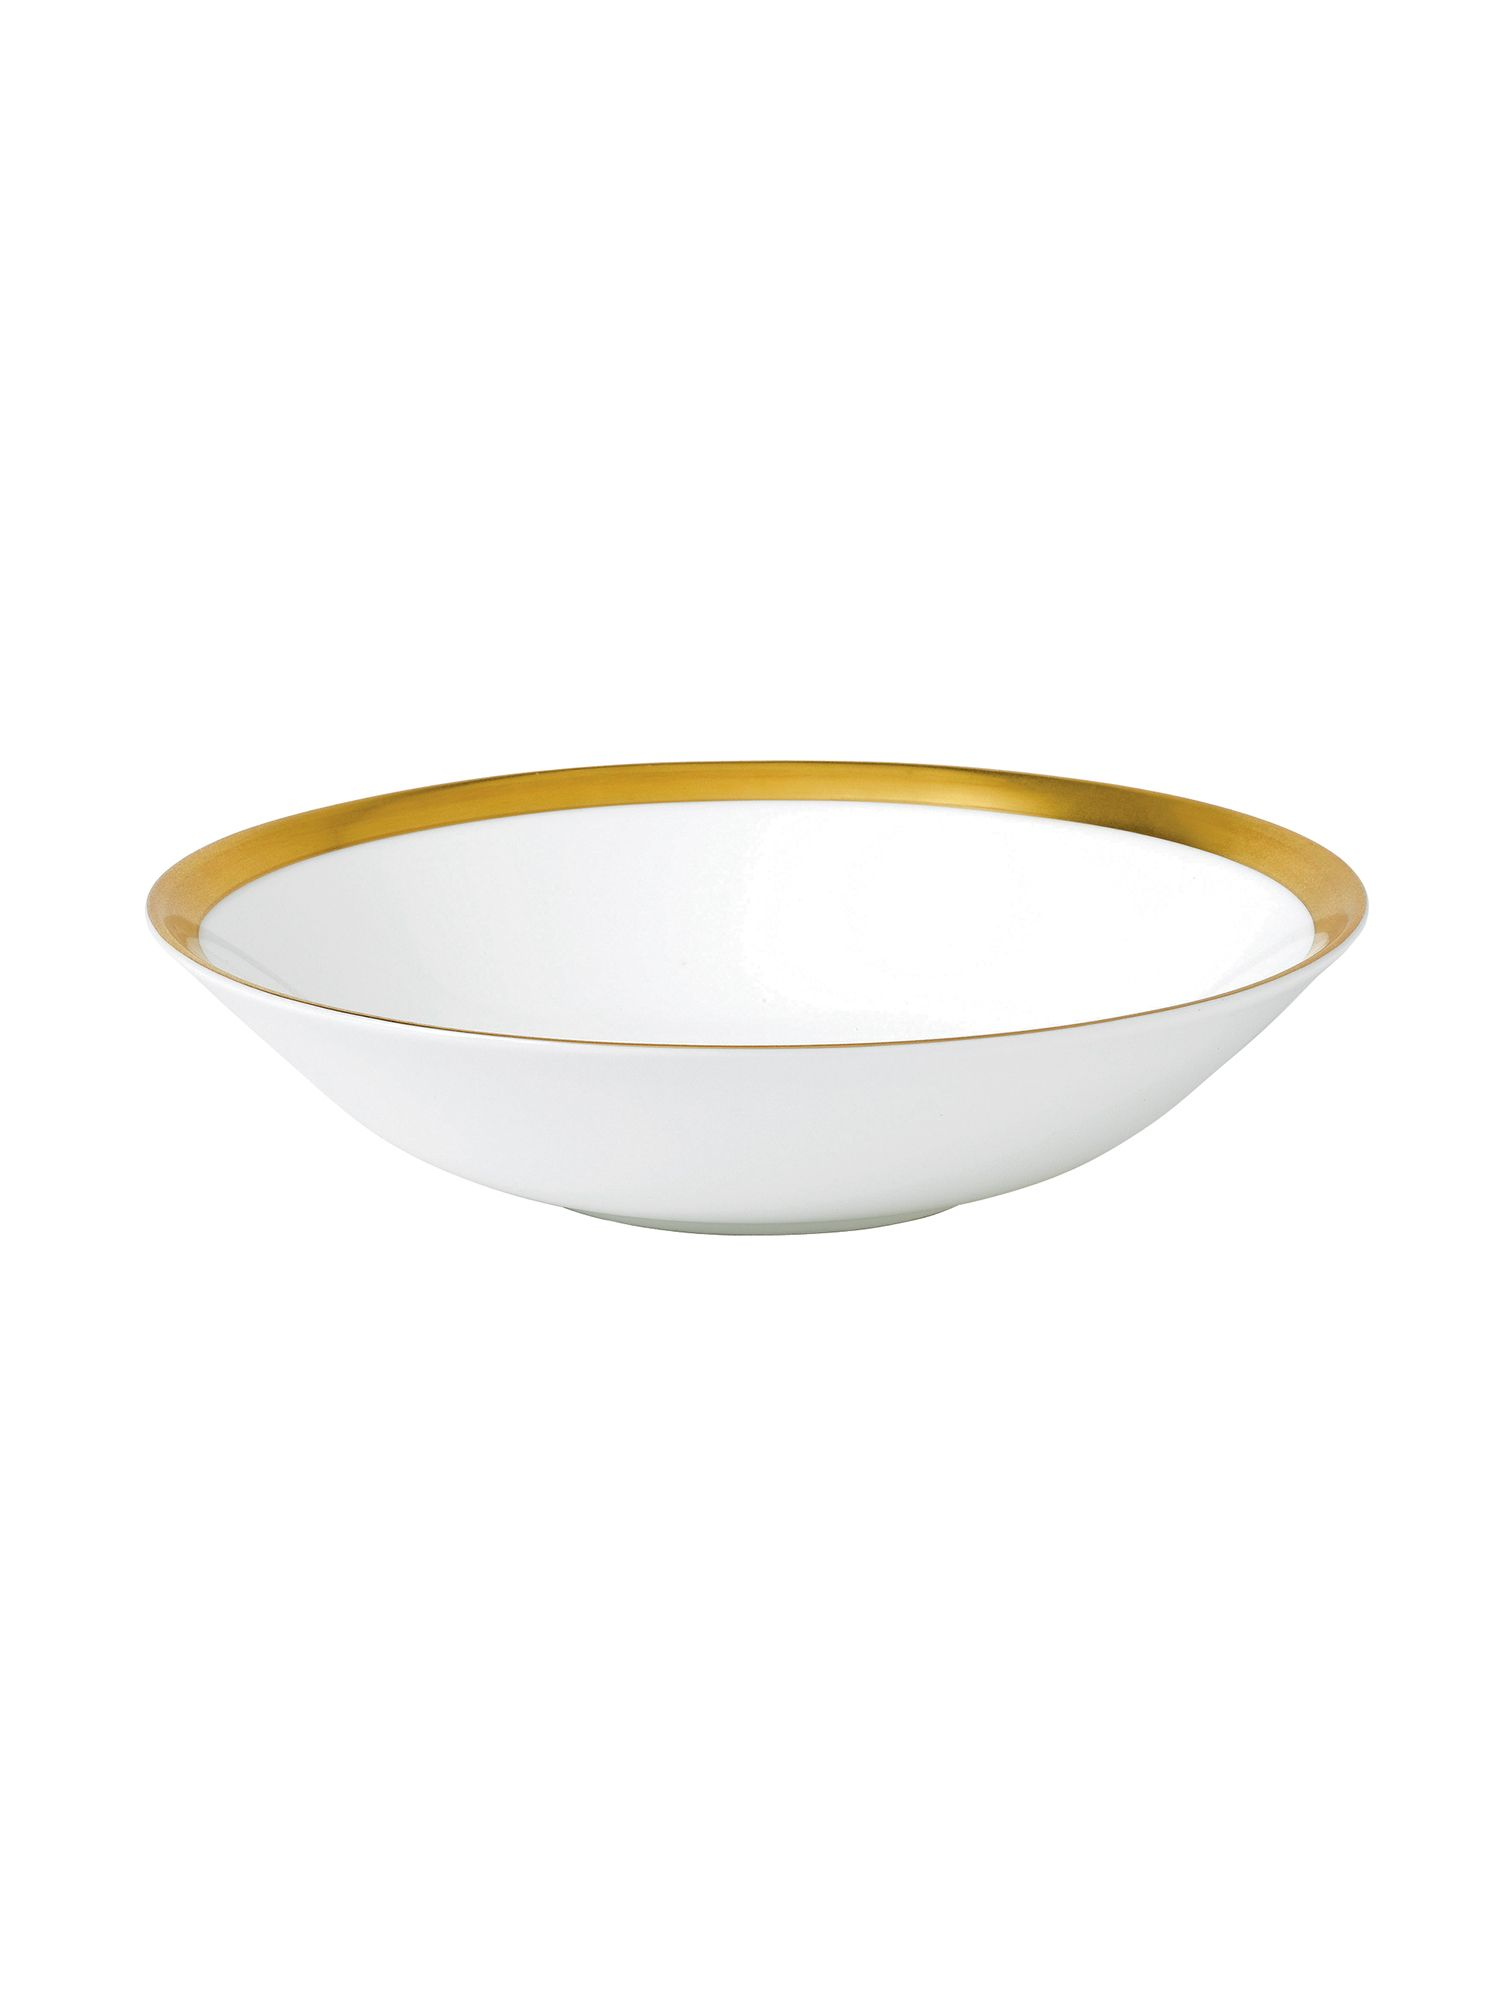 Jasper conran bone china gold banded cereal bowl